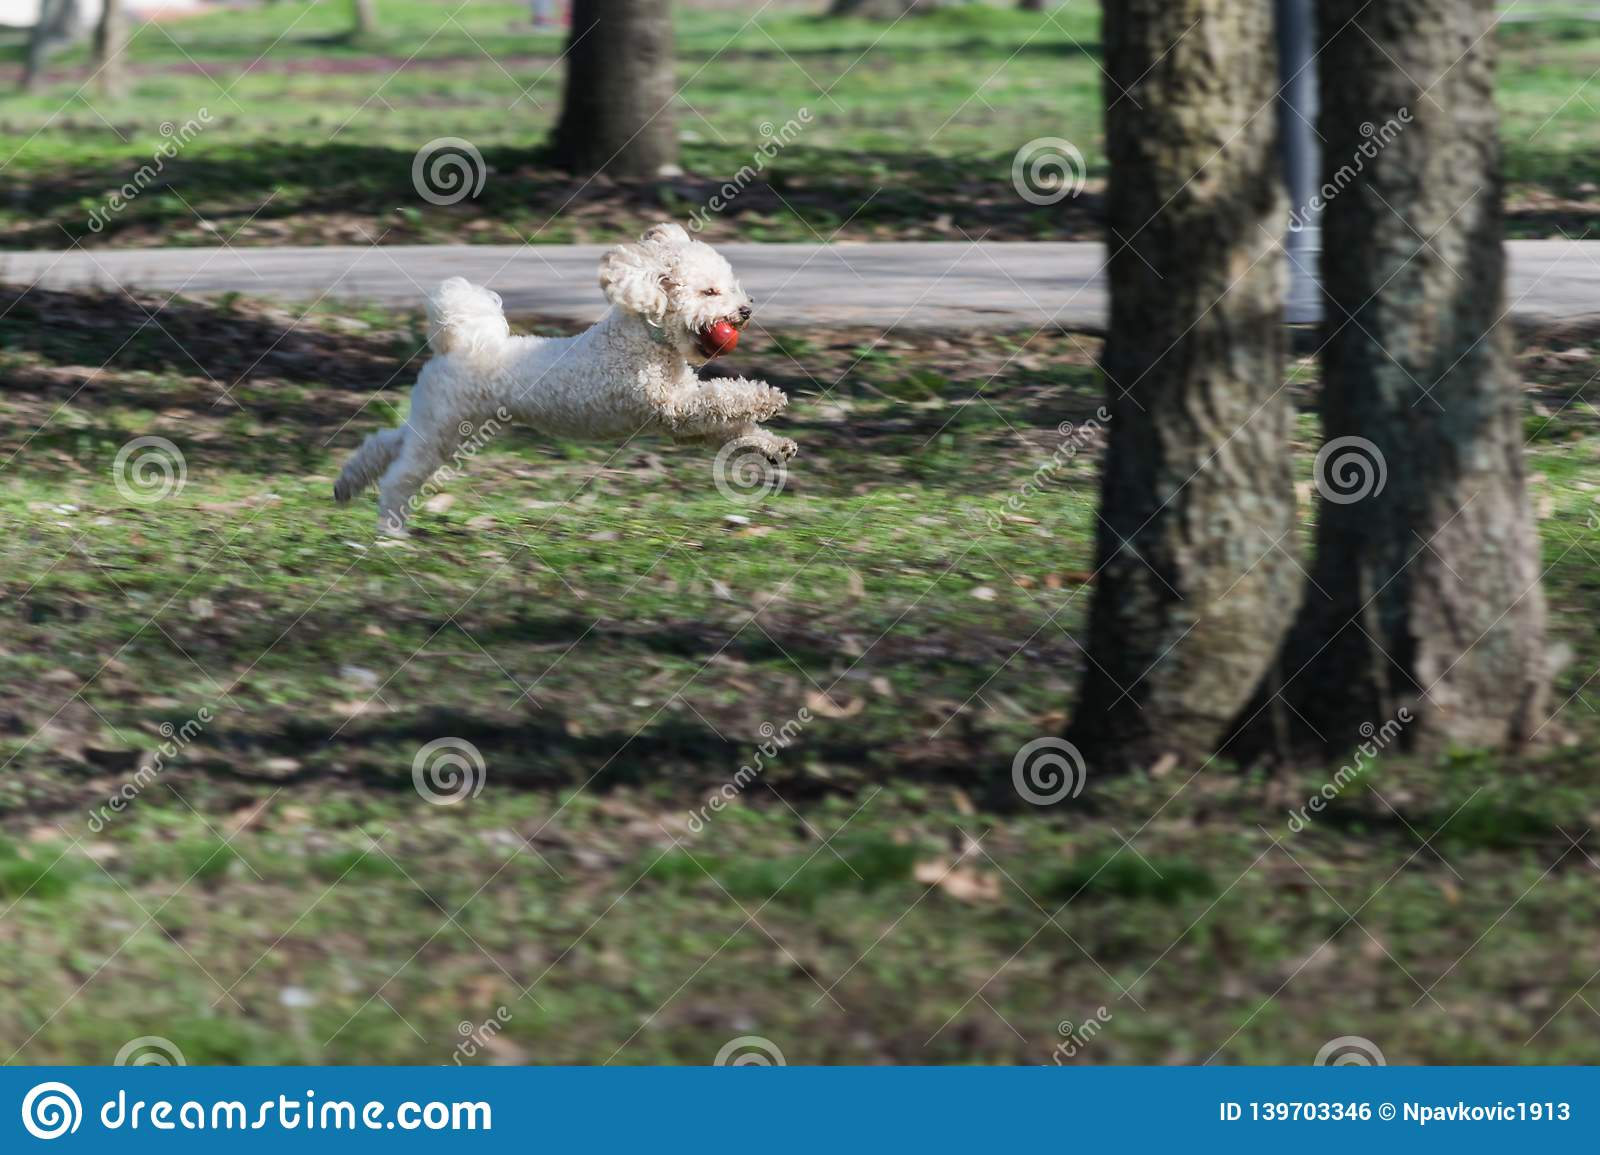 Bichon is running and jumping with a red ball in mouth in park